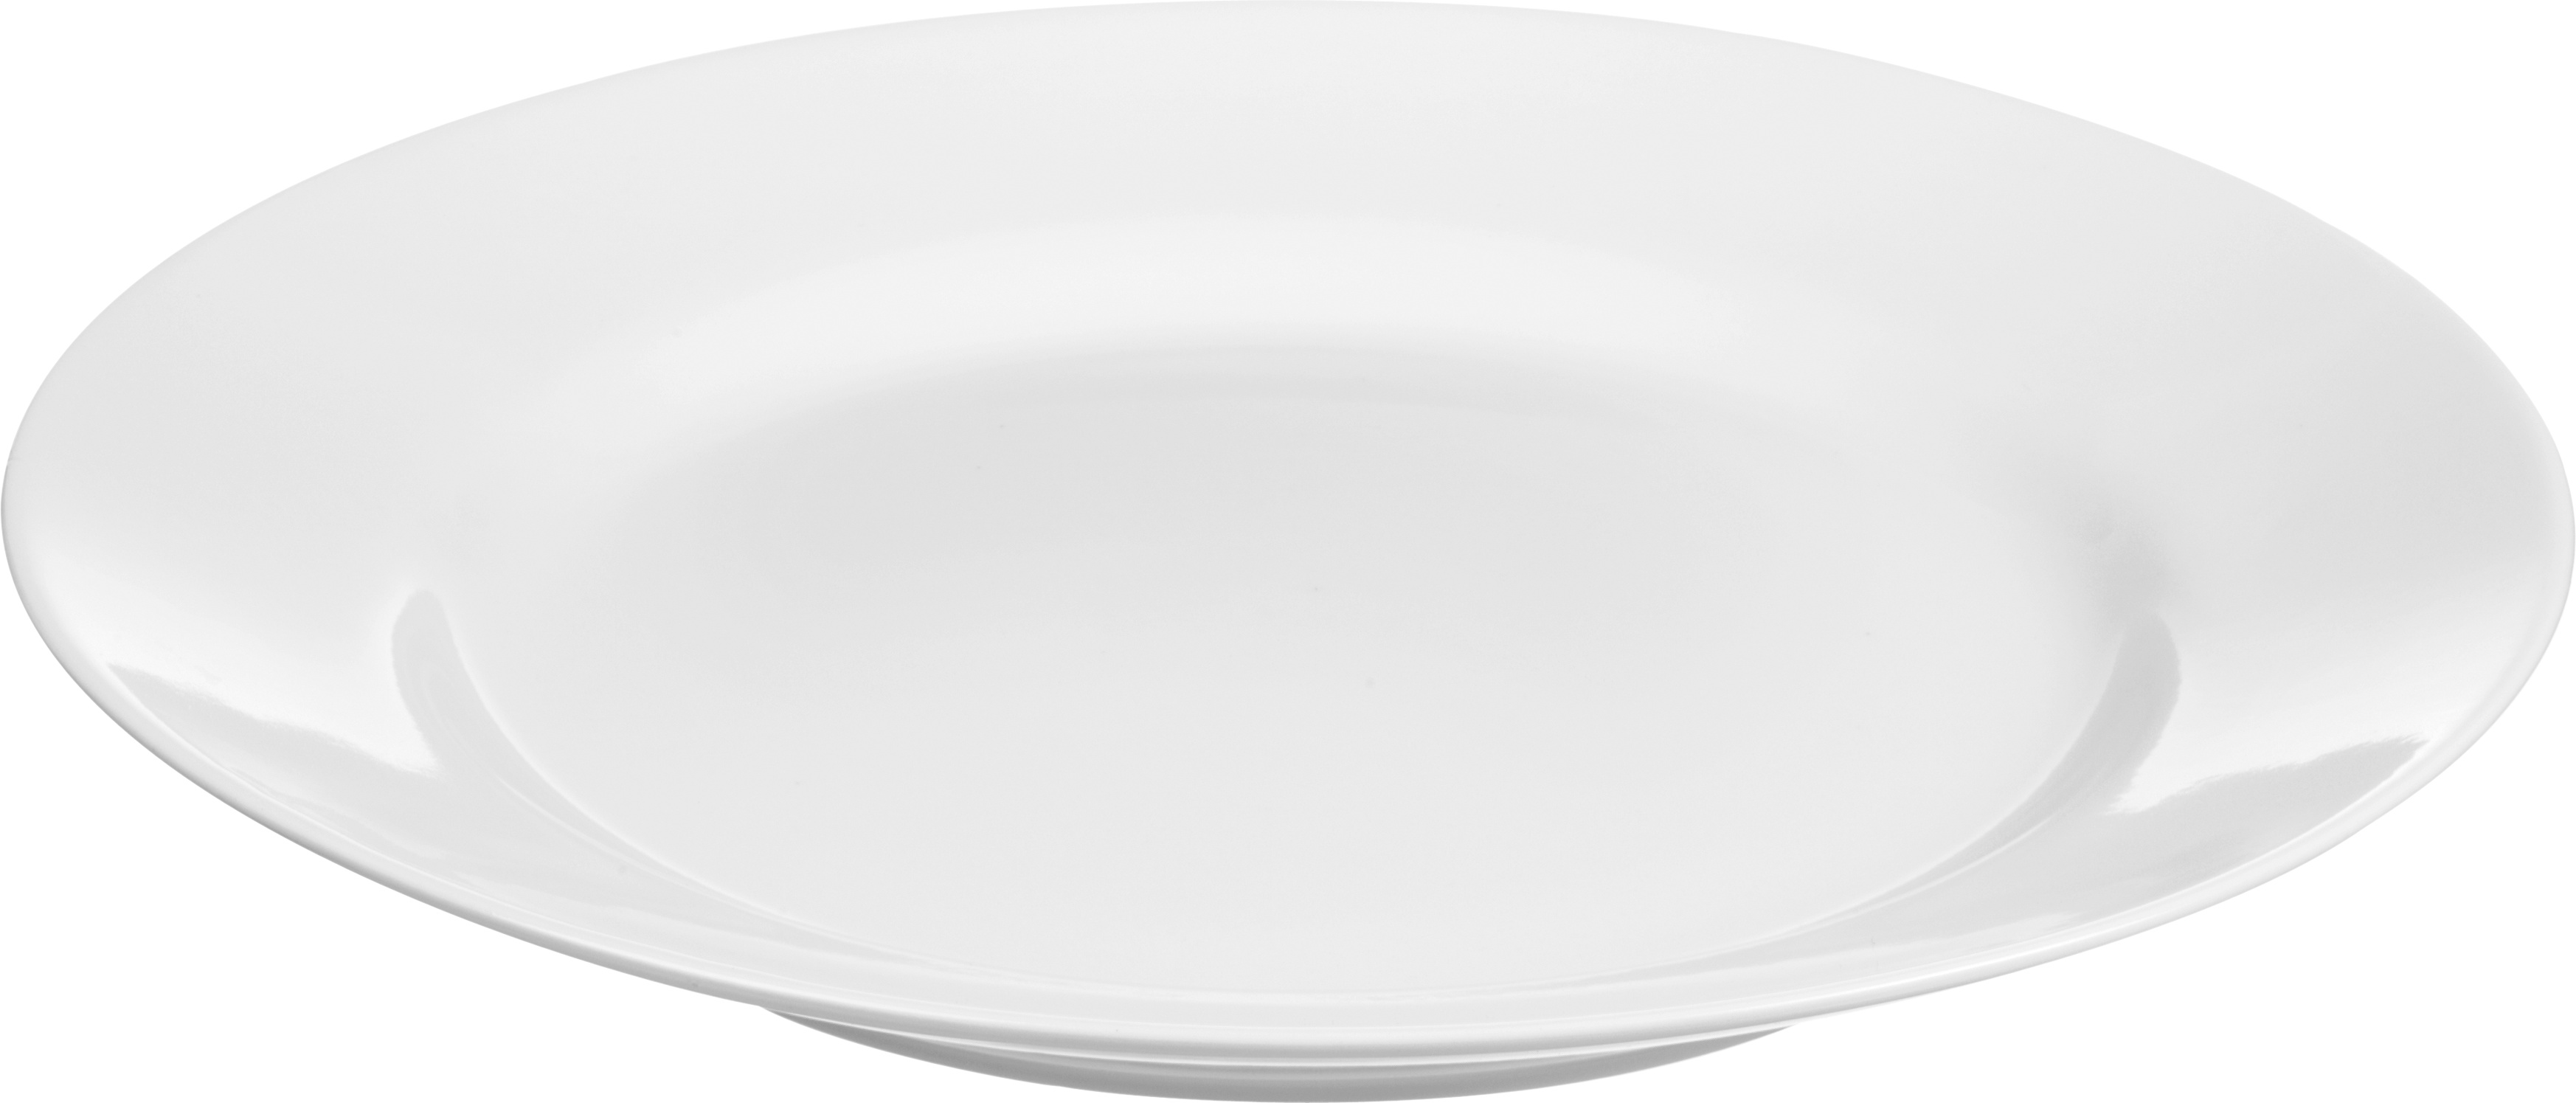 white plate PNG image - Plate HD PNG